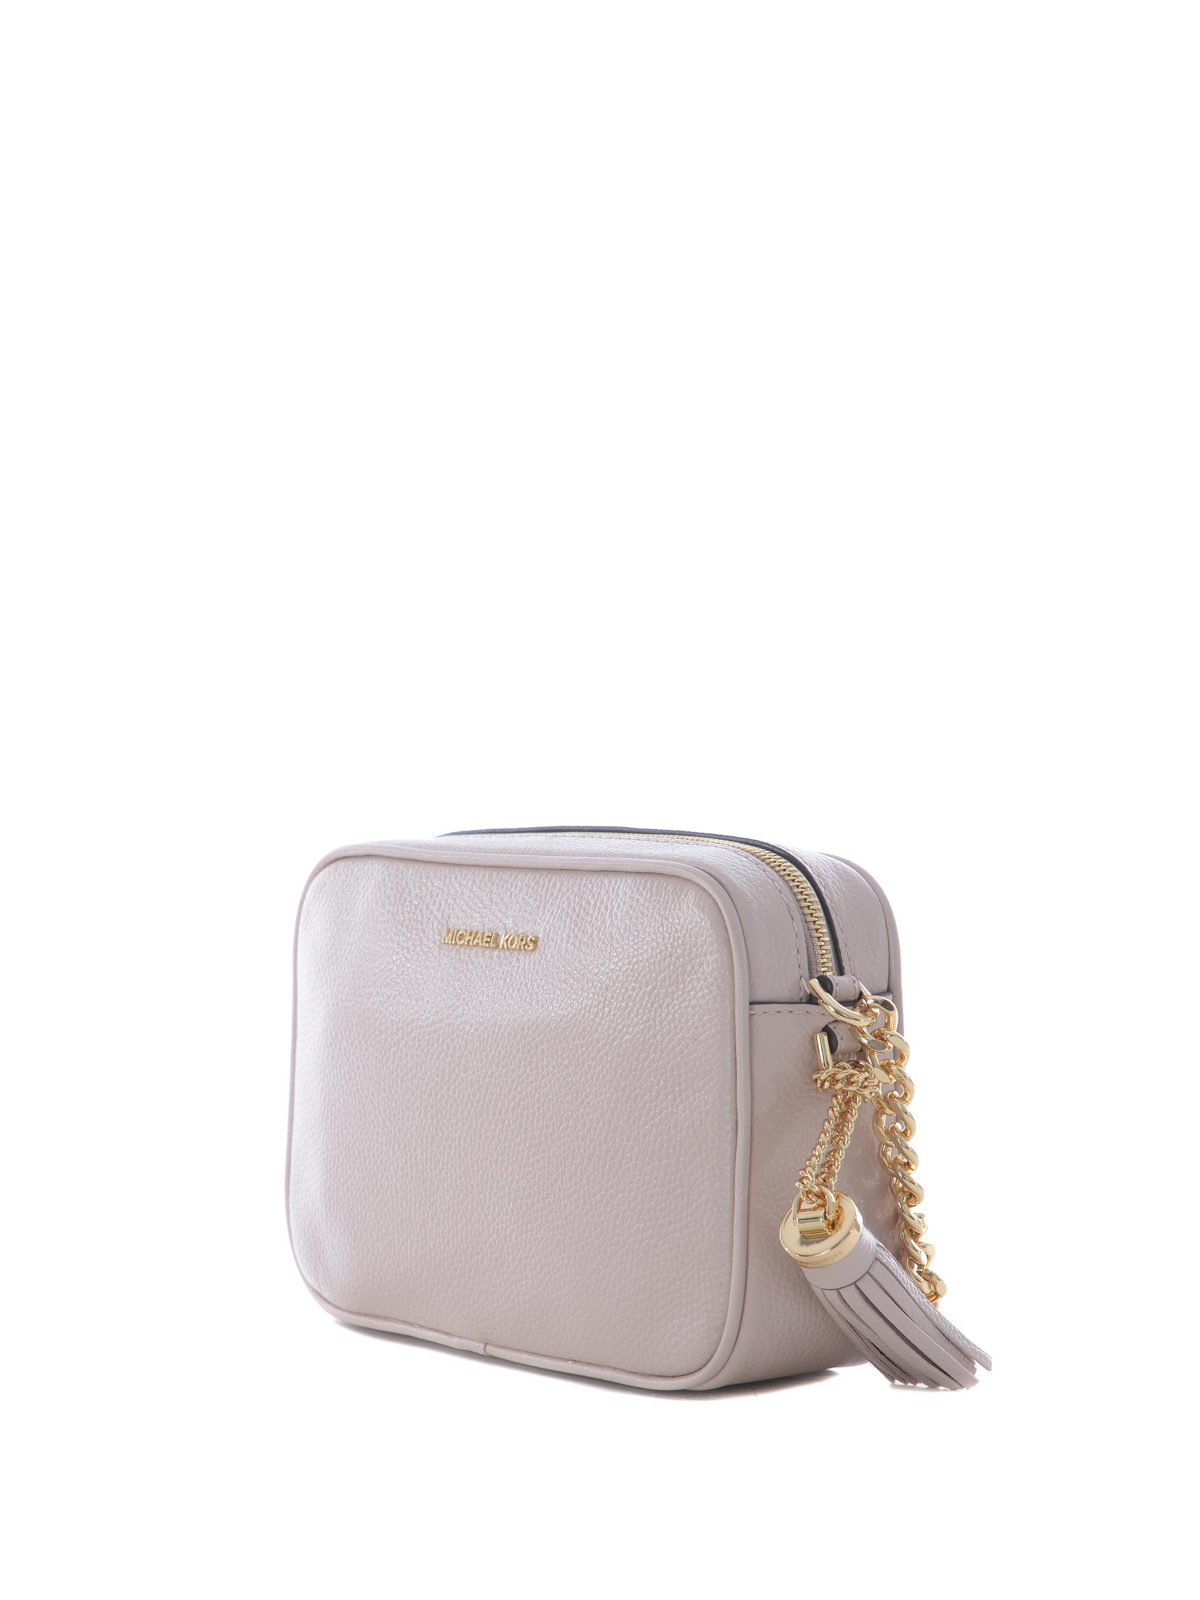 5829650ab728 MICHAEL KORS  cross body bags online - Ginny pink leather camera bag